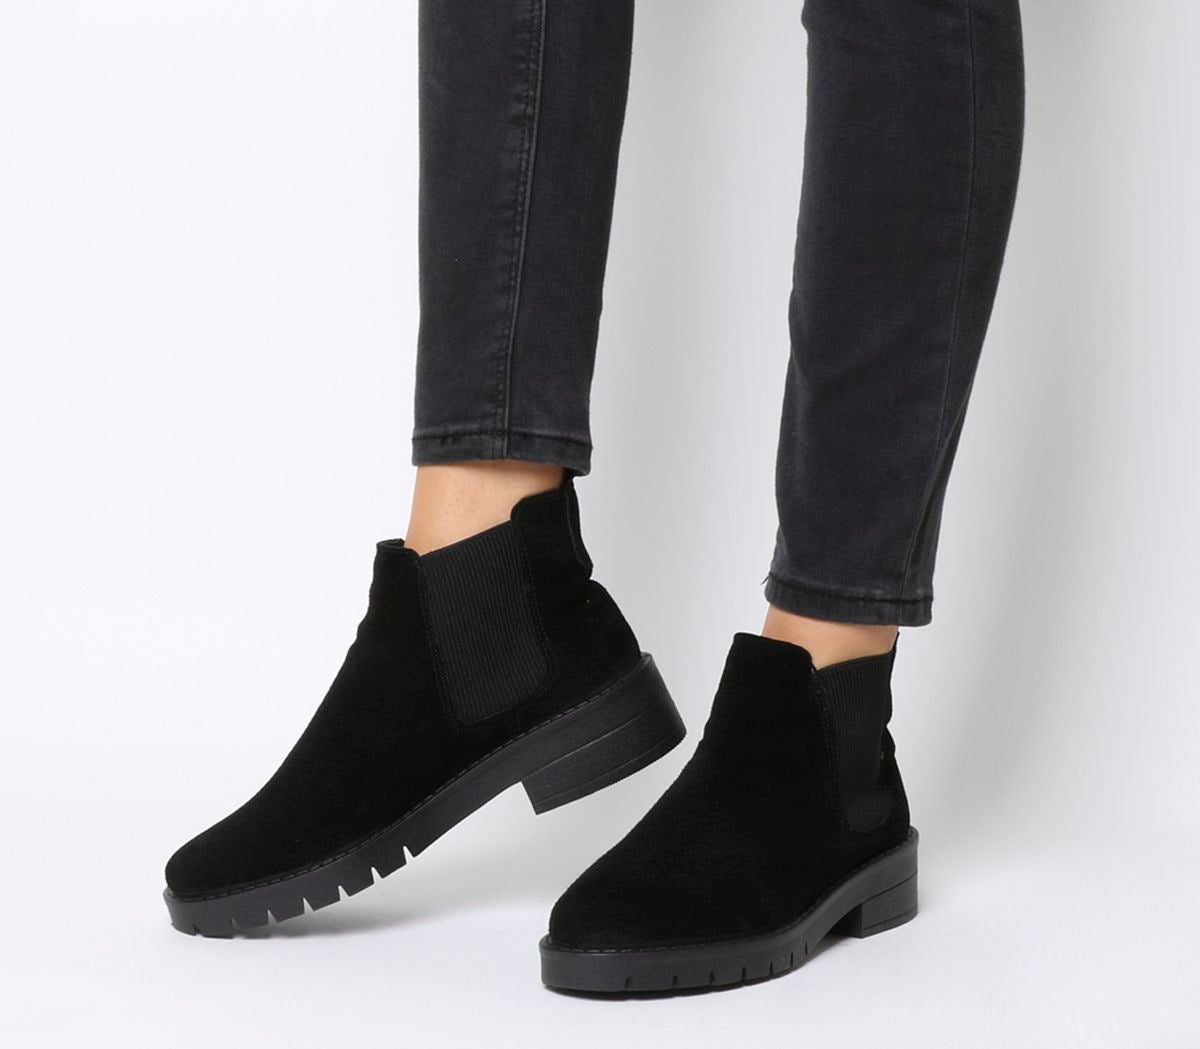 Office Aimee Cleated Chelsea Boots Black Suede